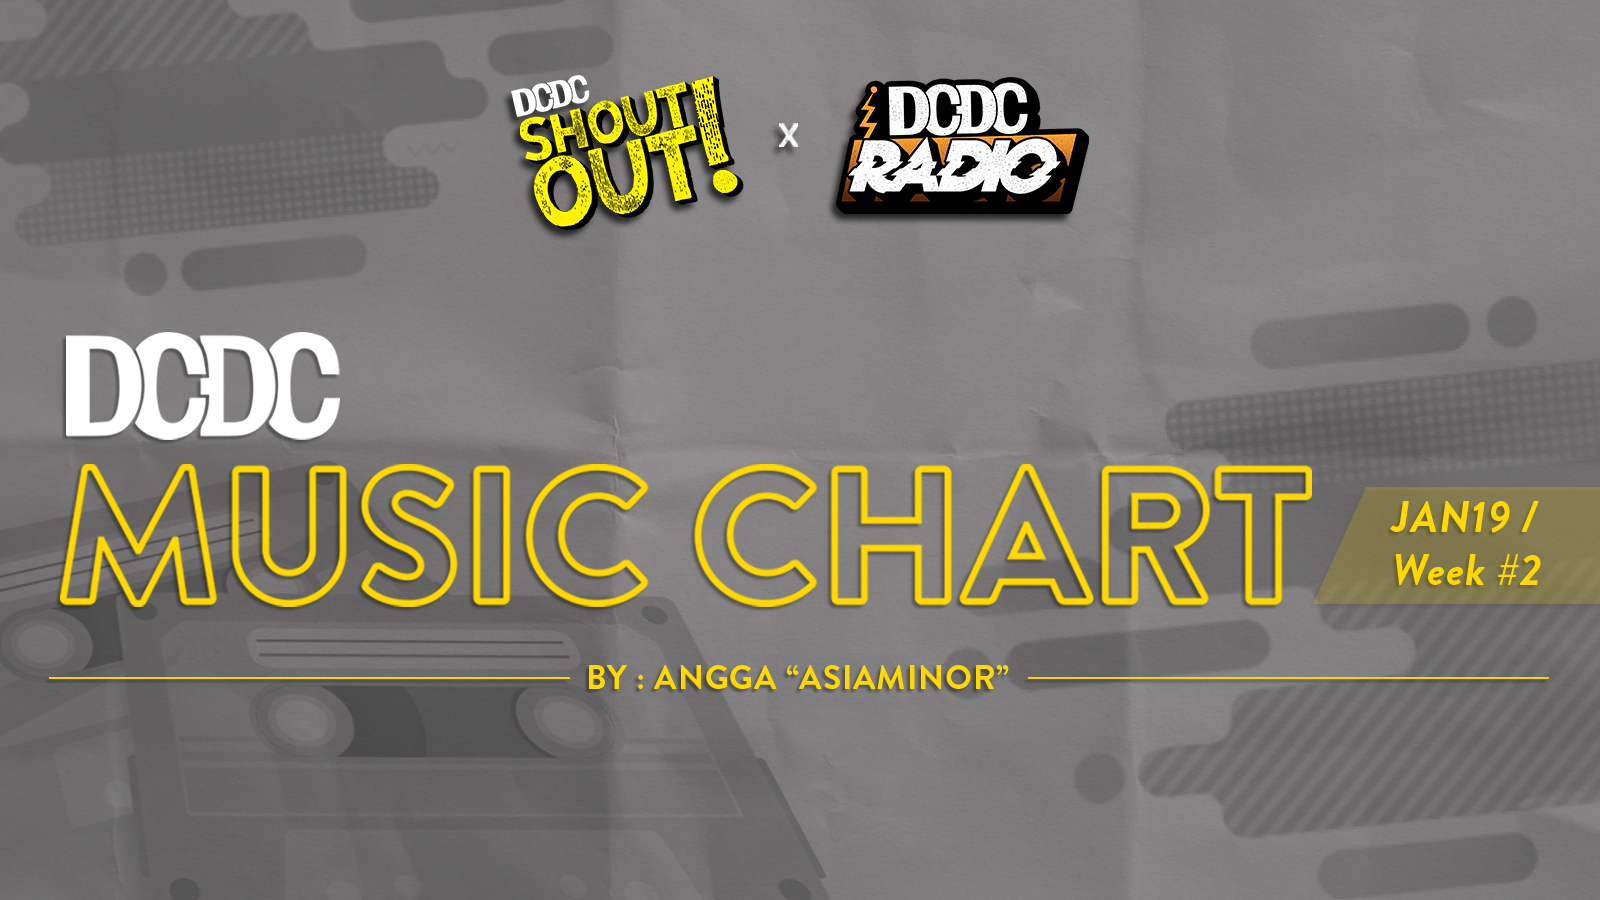 DCDC Music Chart - #2nd Week of January 2019